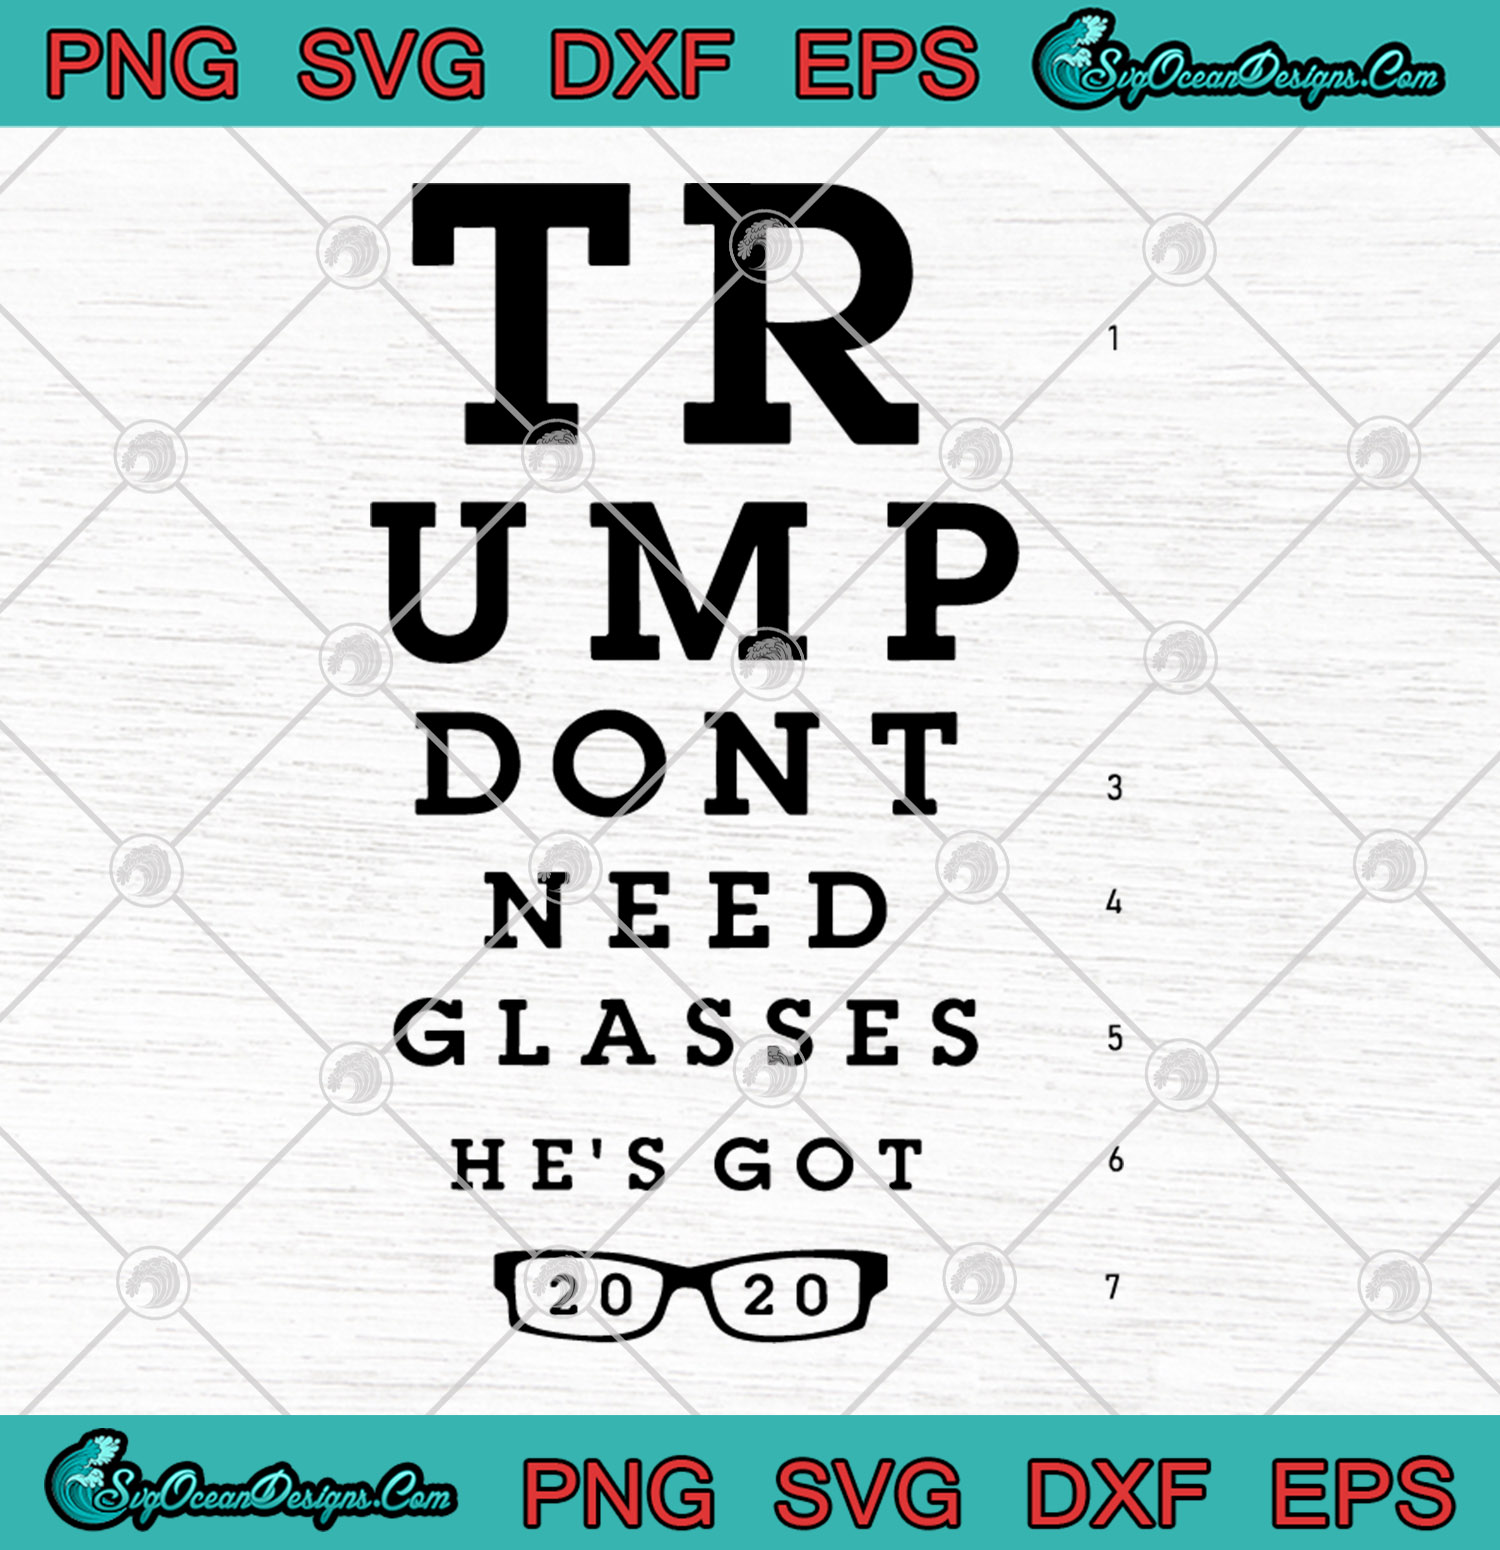 Donald Trump Trump Don T Need Glasses He S Got 2020 Svg Png Dxf Eps Cutting File Cricut Silhouette Art Designs Digital Download